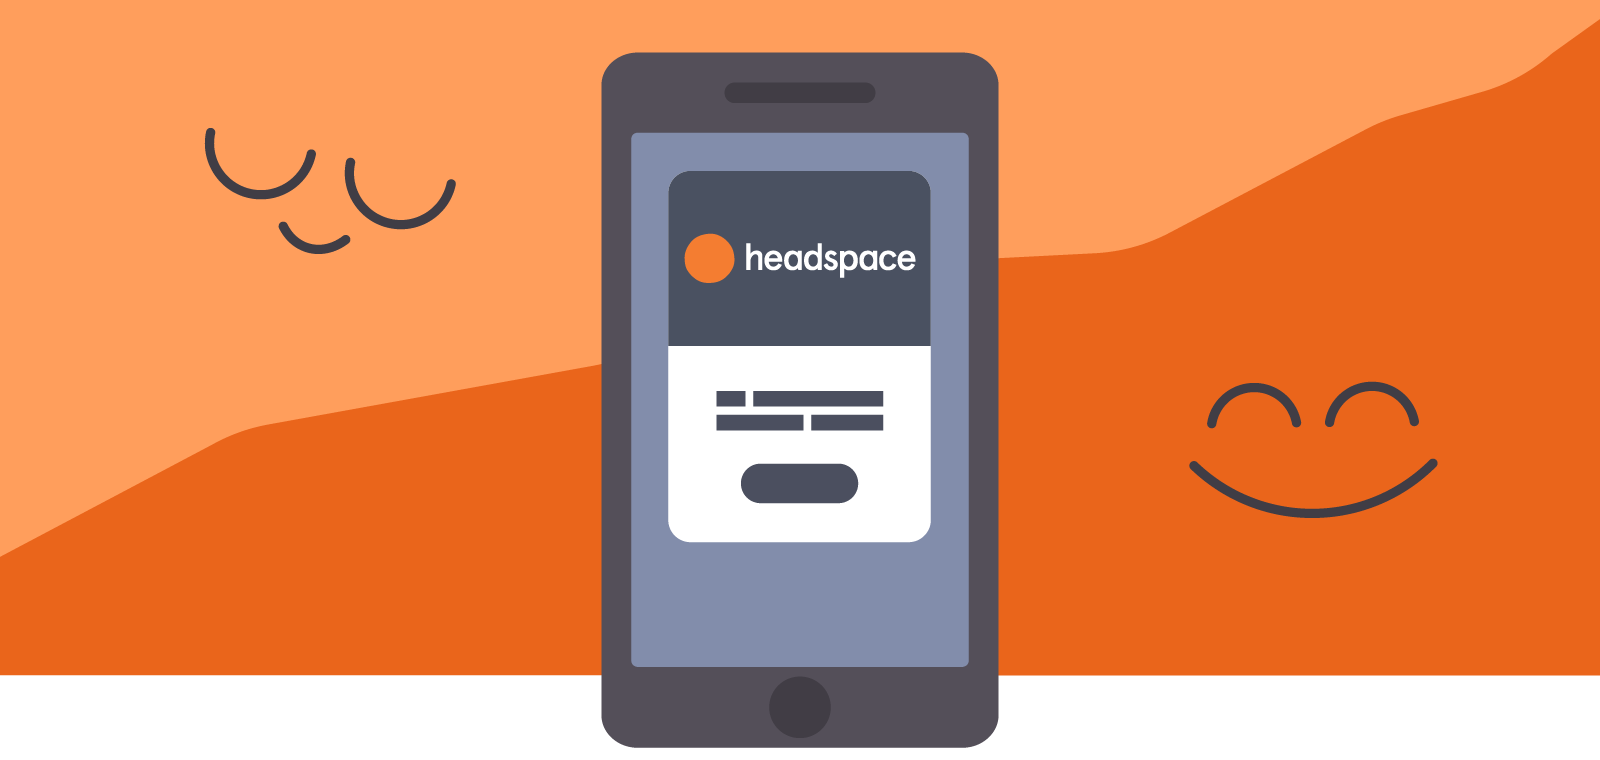 Headspace retention case study in app